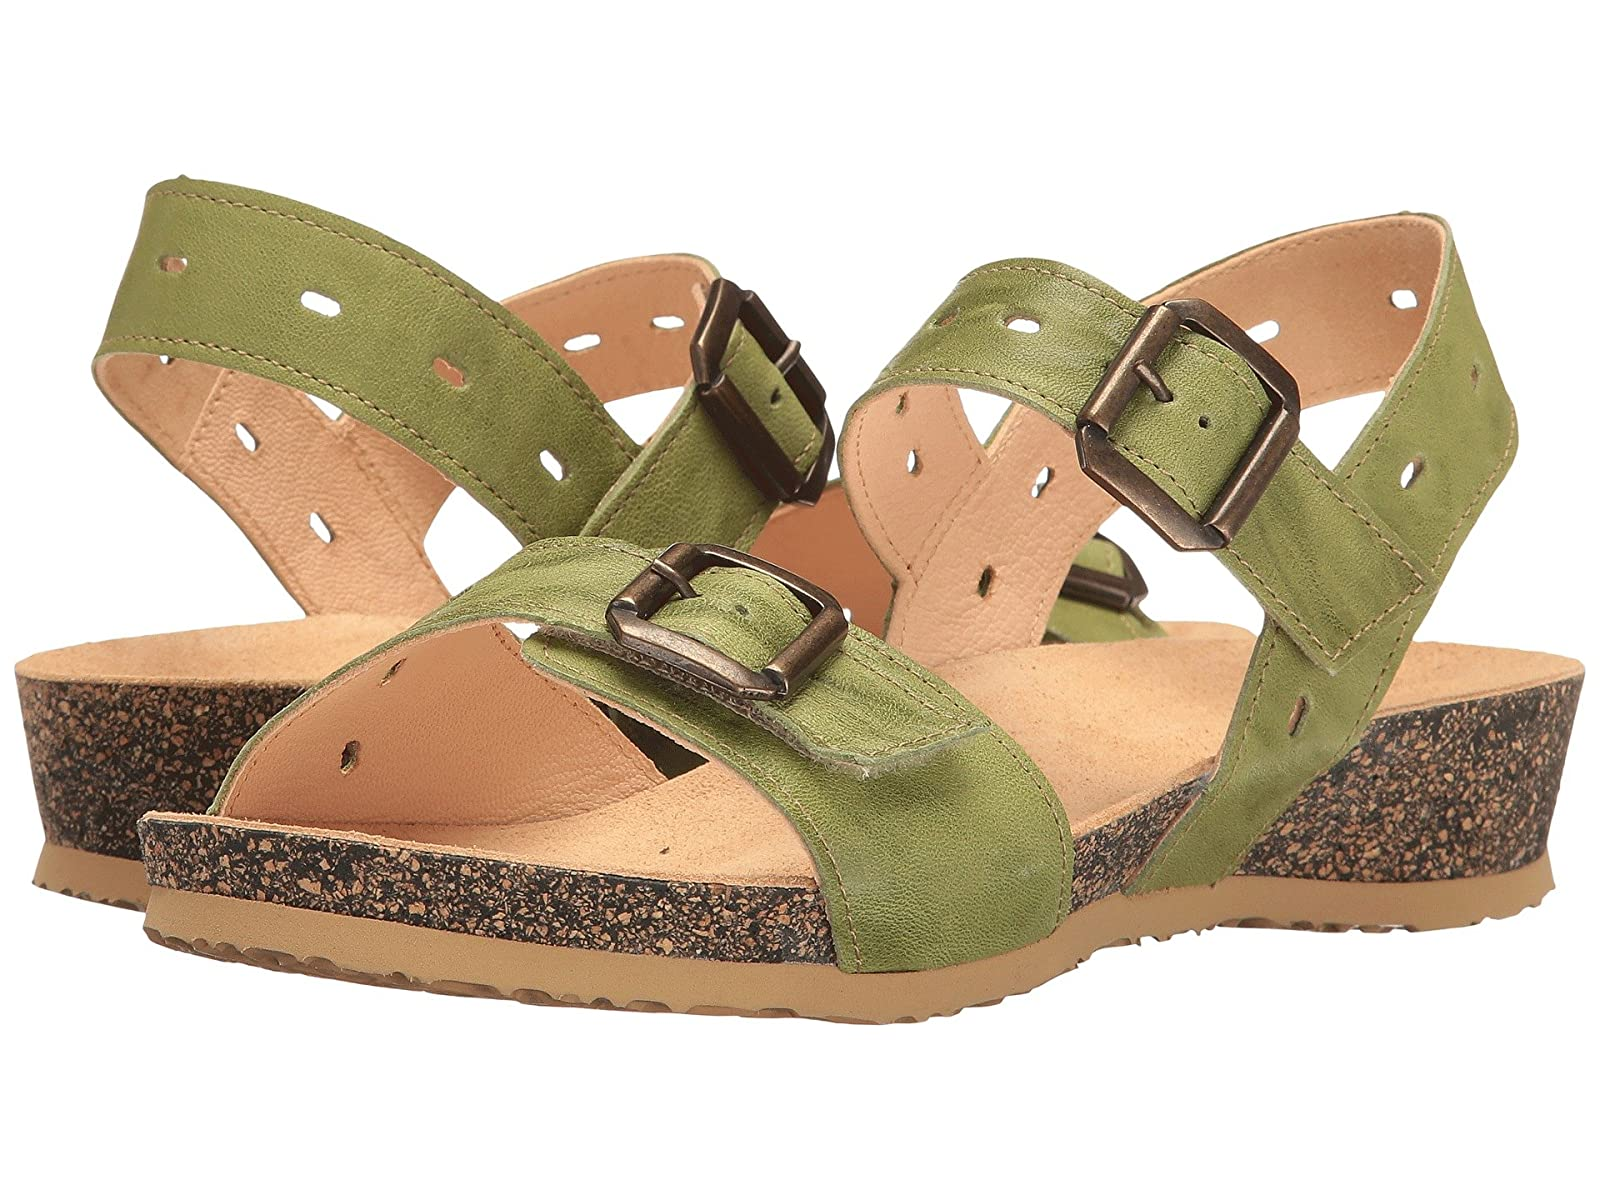 Think! Dumia - 80374Cheap and distinctive eye-catching shoes